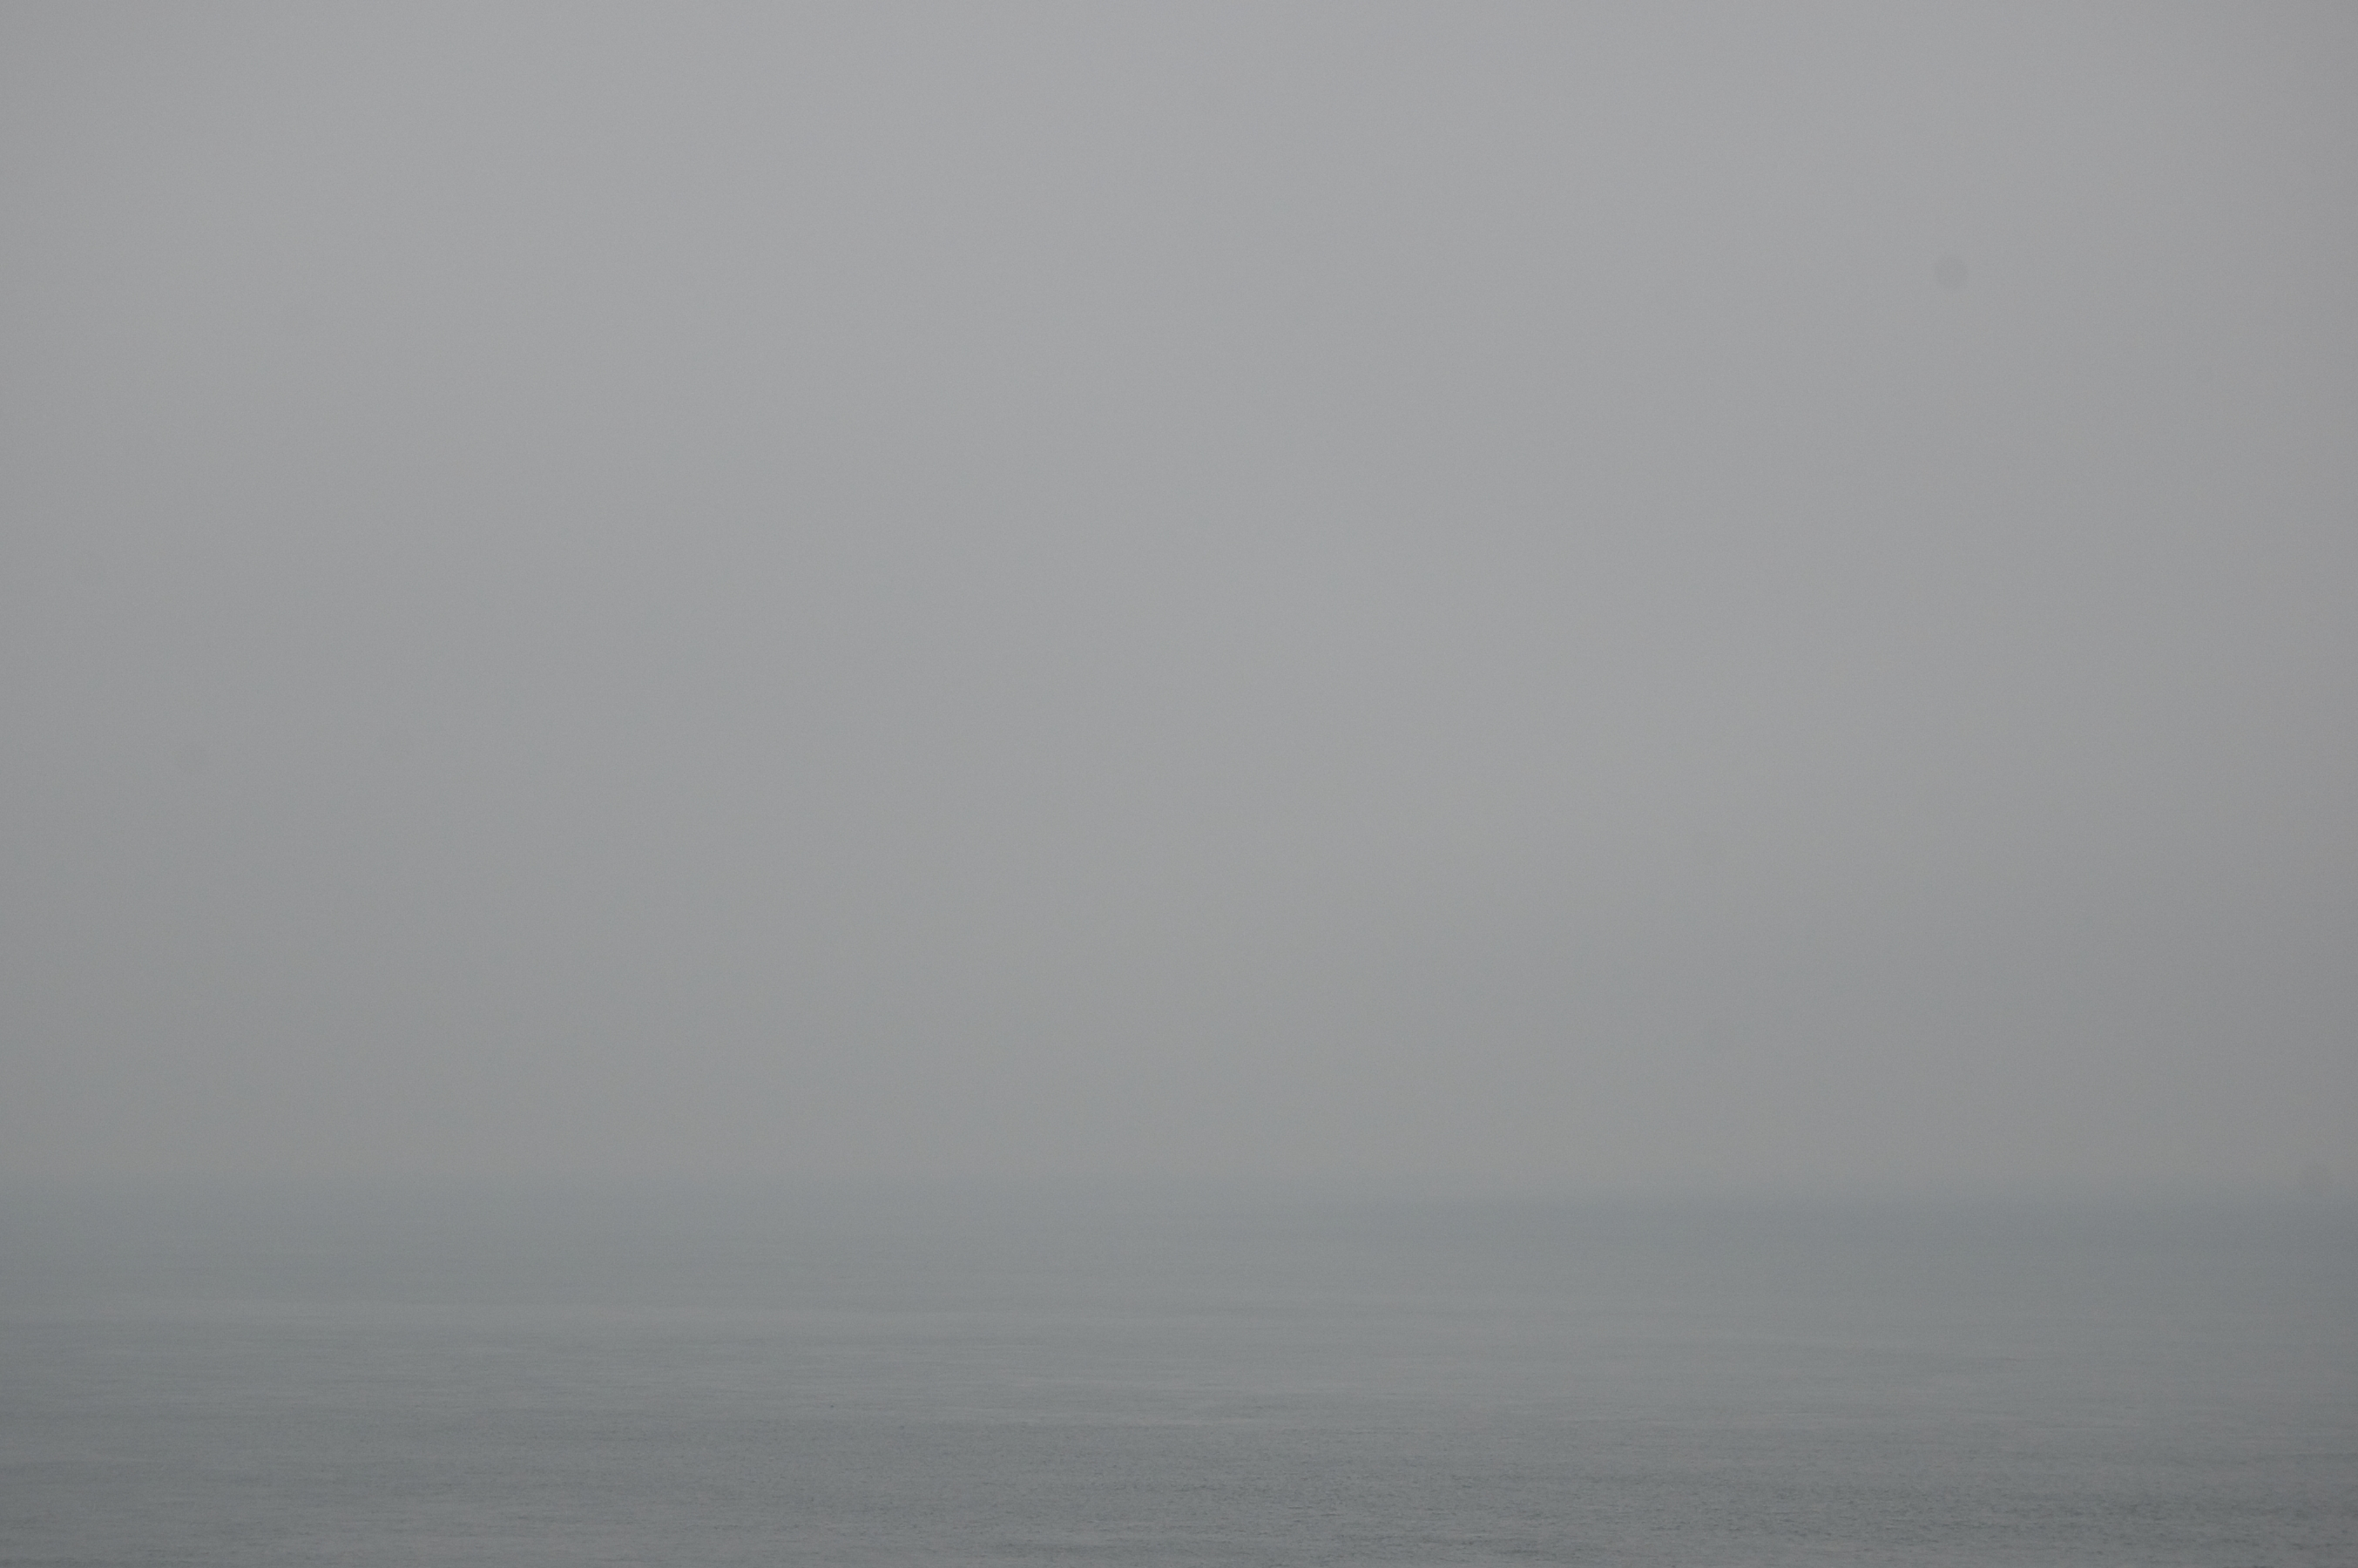 Https Vonnscottbair Wordpress Com 2013 02 07 The Minimally Artistic Art Of Instant Minimalist Art Grey Ocean